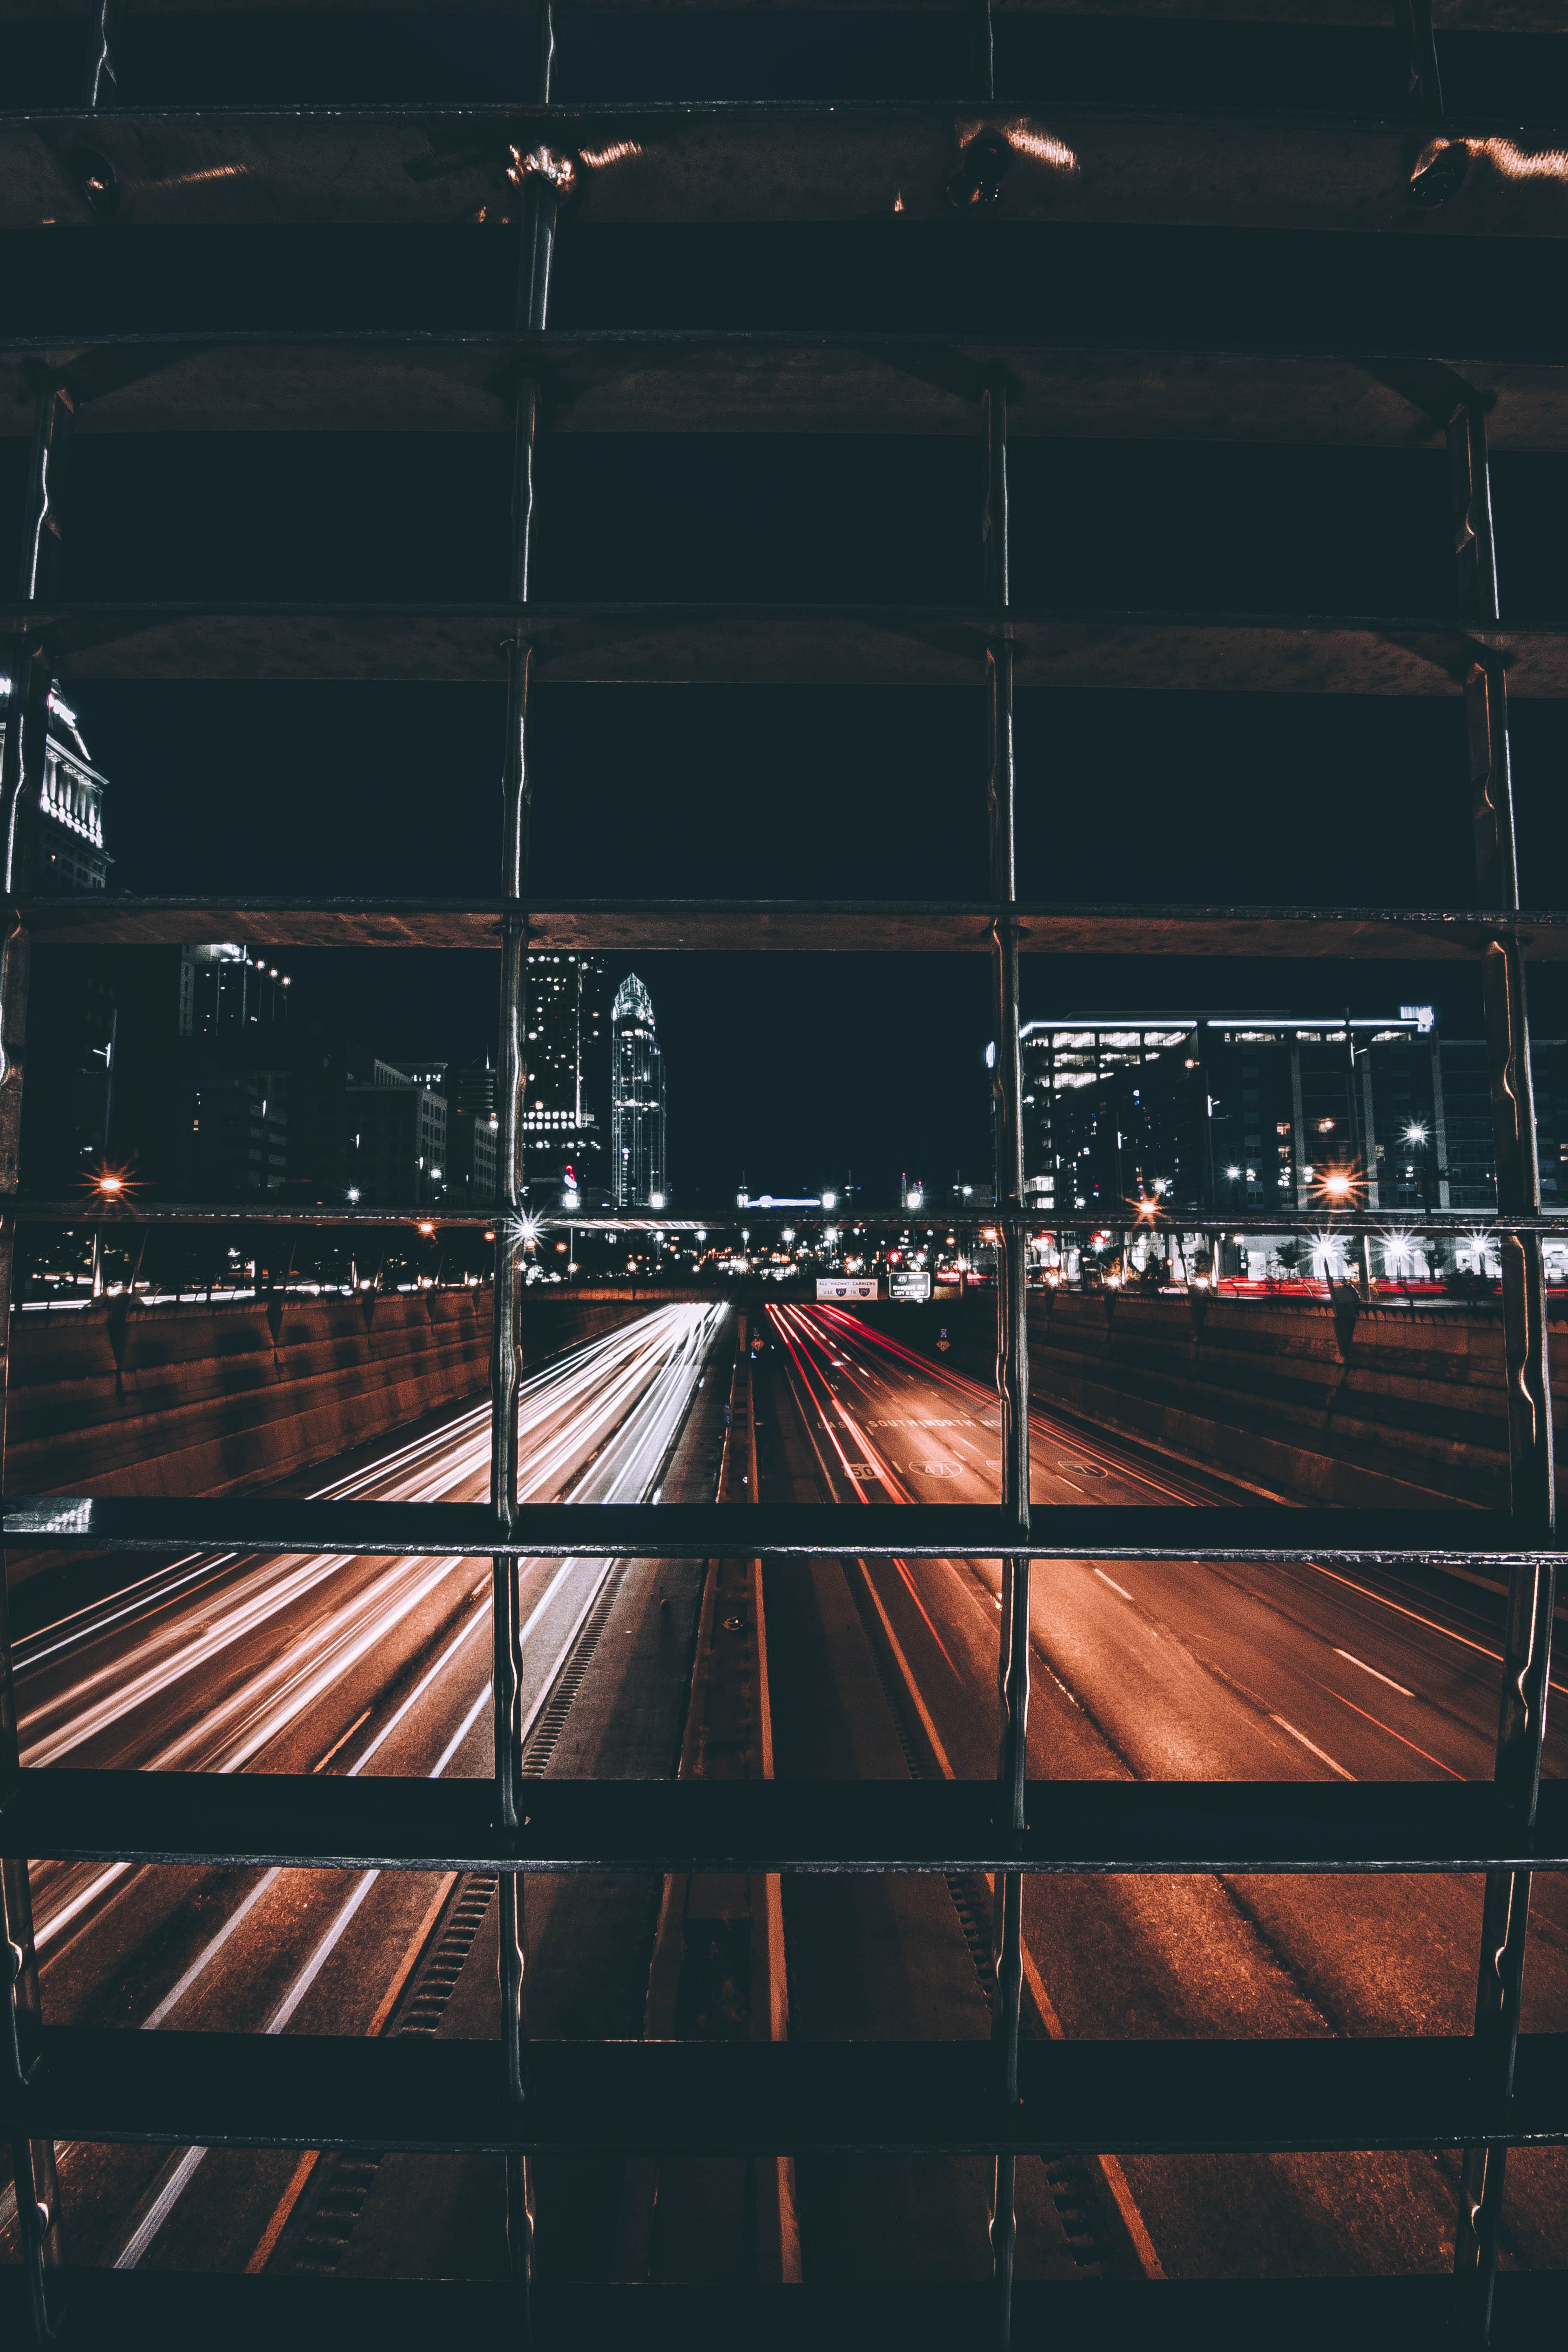 time-lapse photo of road with light streaks view behind grills